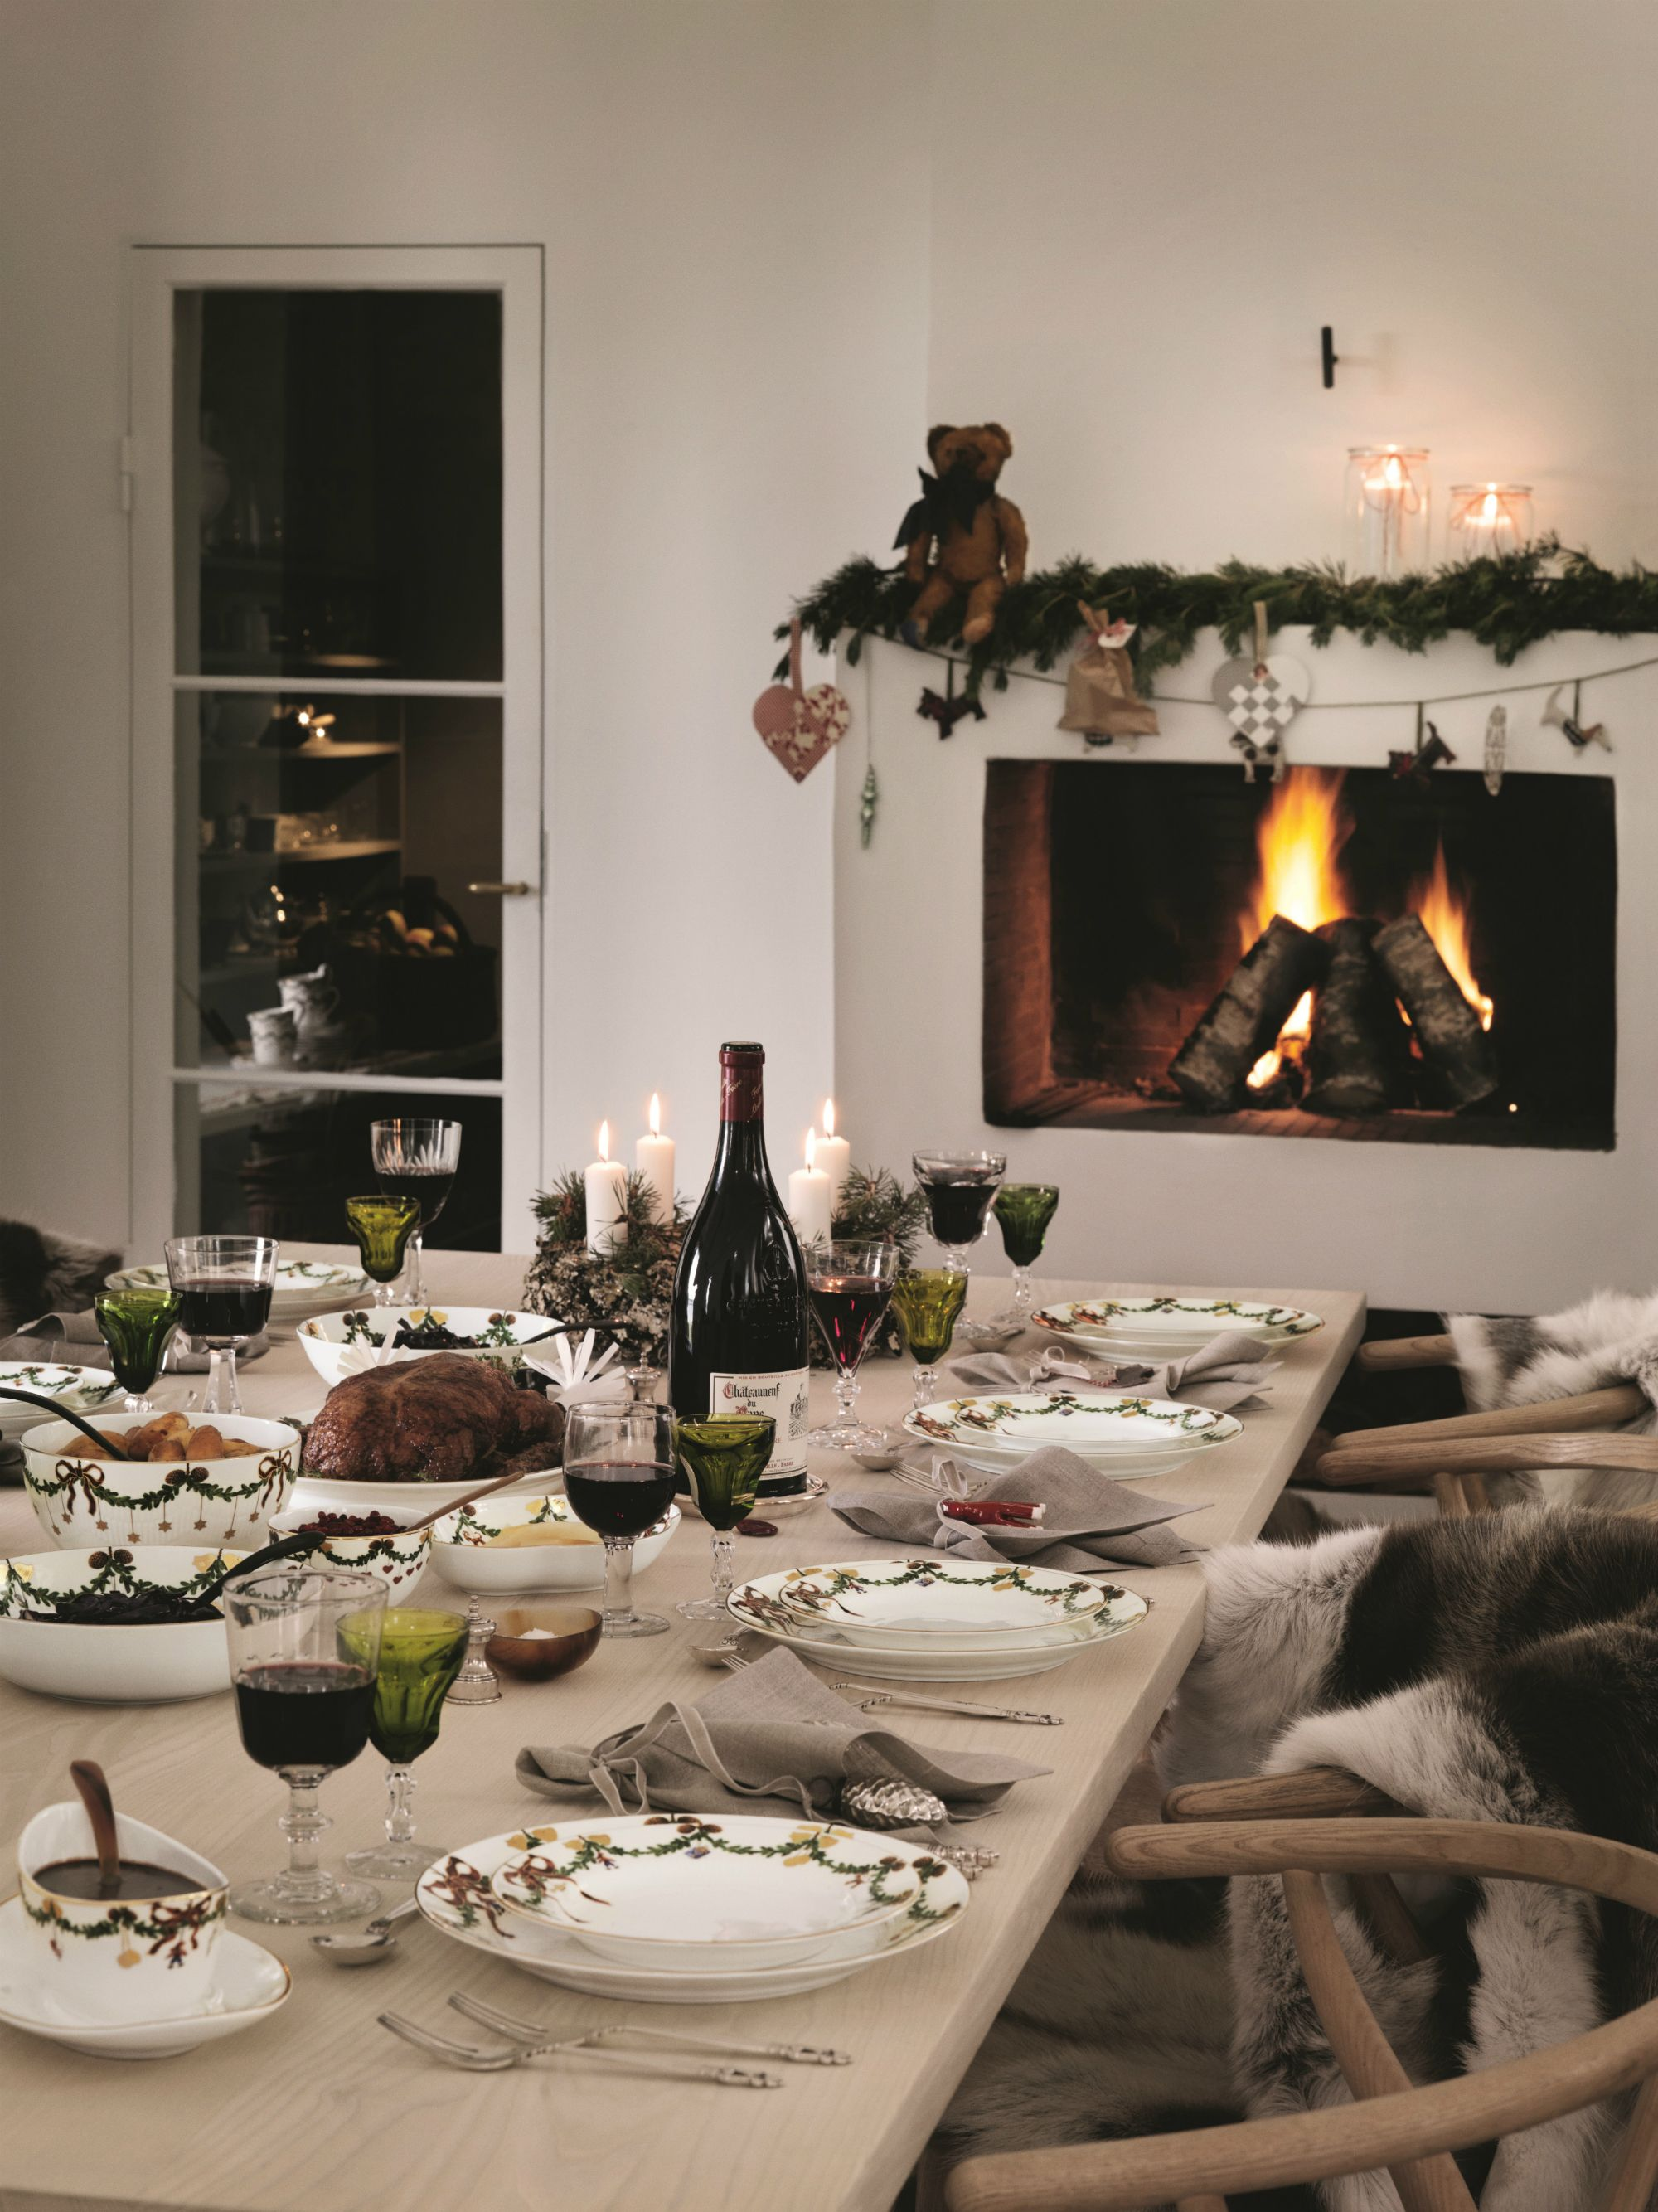 A Beautiful Scandinavian Christmas Table Setting The Timber Wishbone Chairs